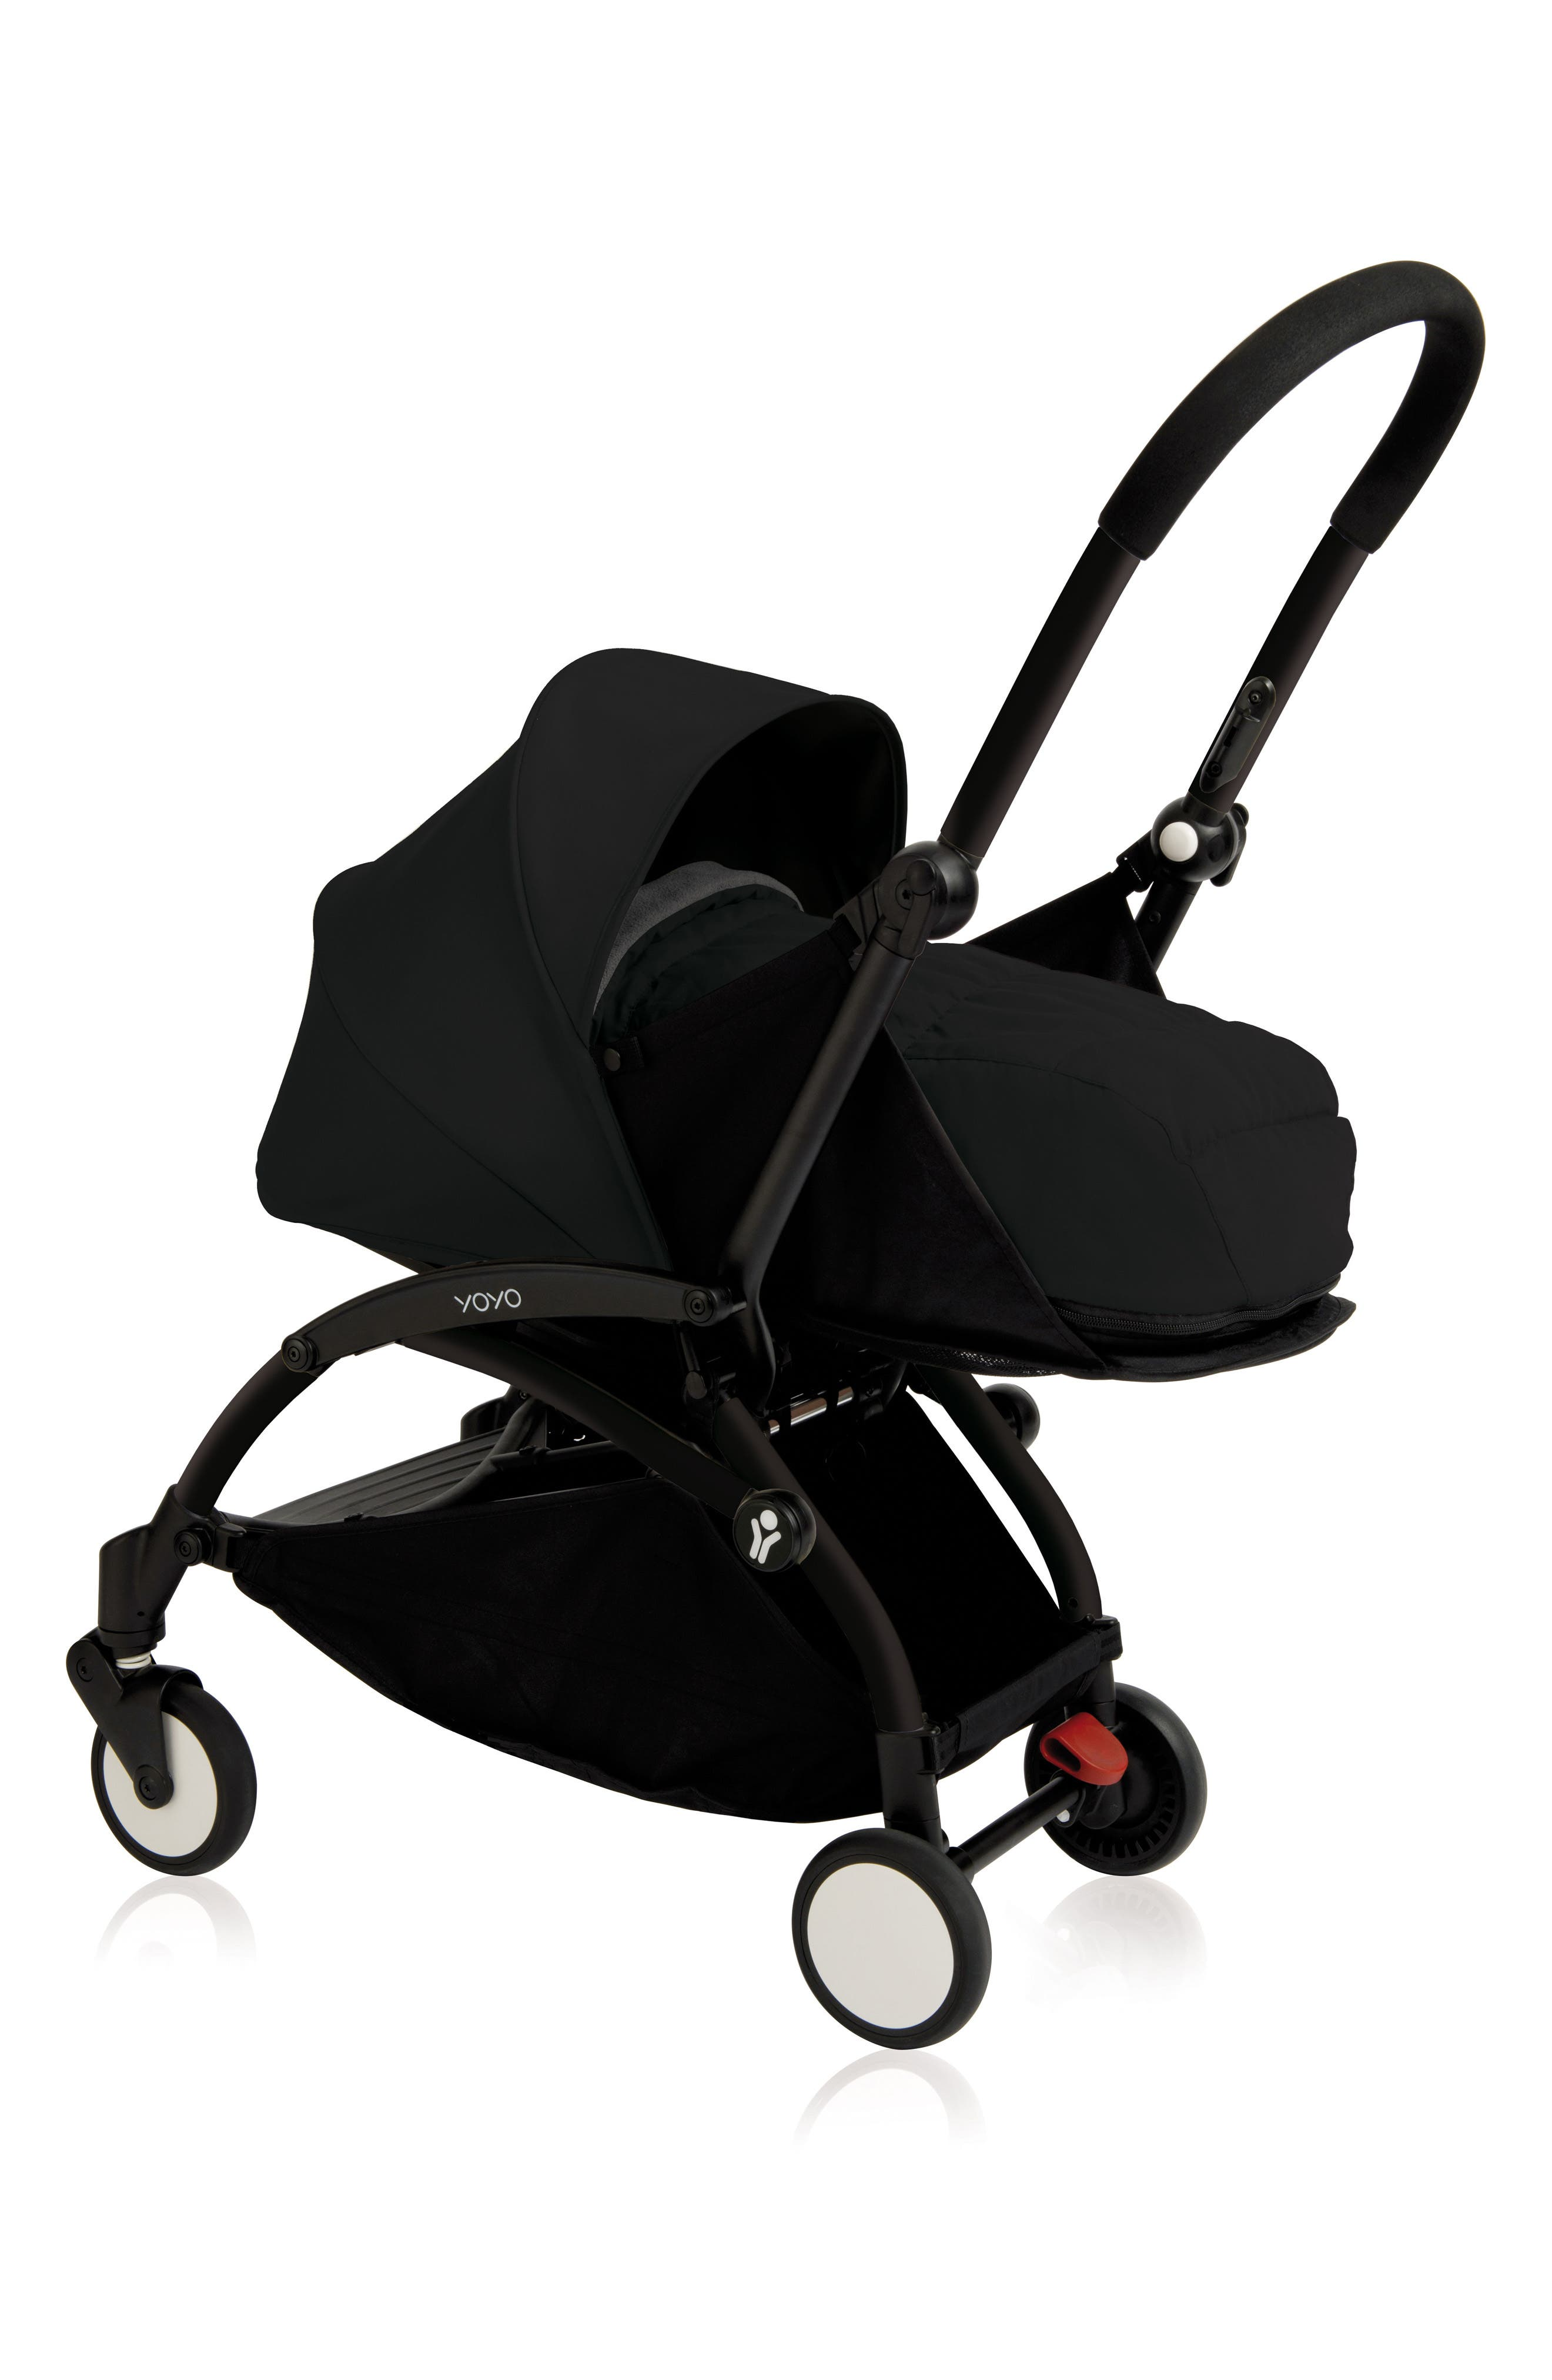 BABYZEN YOYO+ Complete Stroller with Newborn Color Pack Fabric Set,                         Main,                         color, BLACK